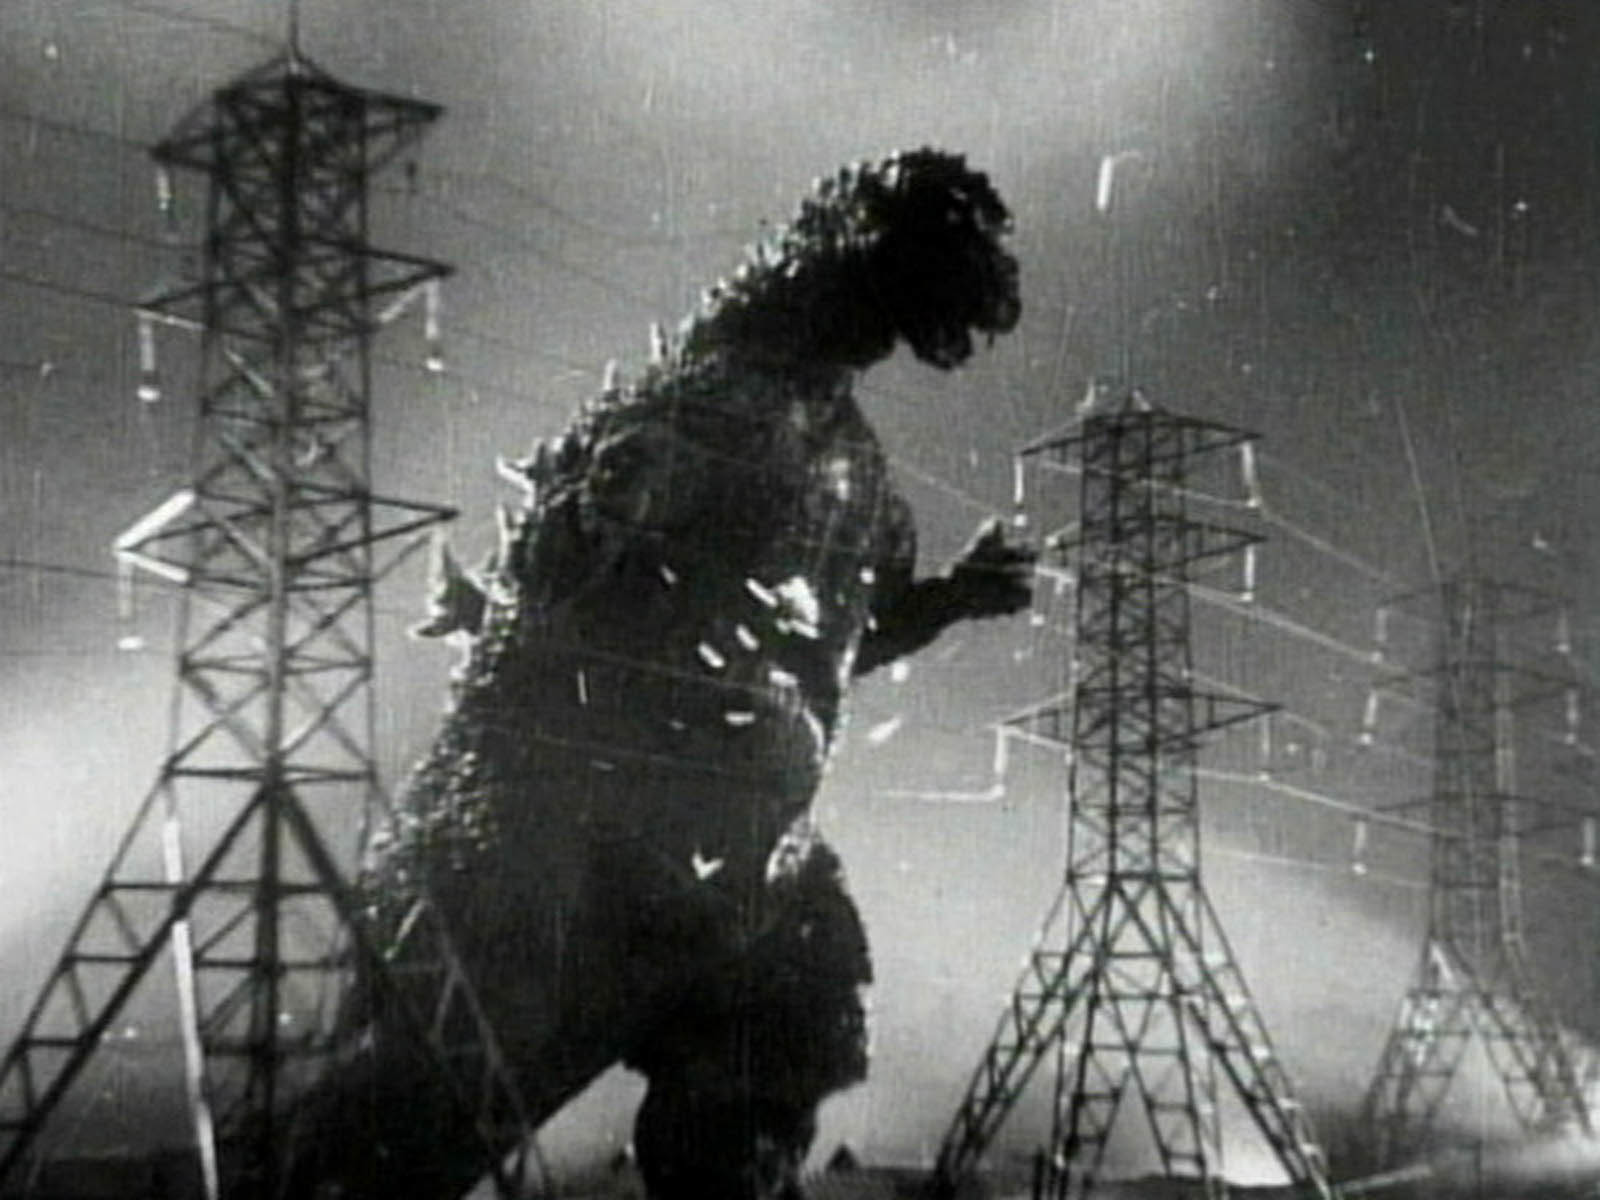 Godzilla power lines monochrome HD Wallpaper